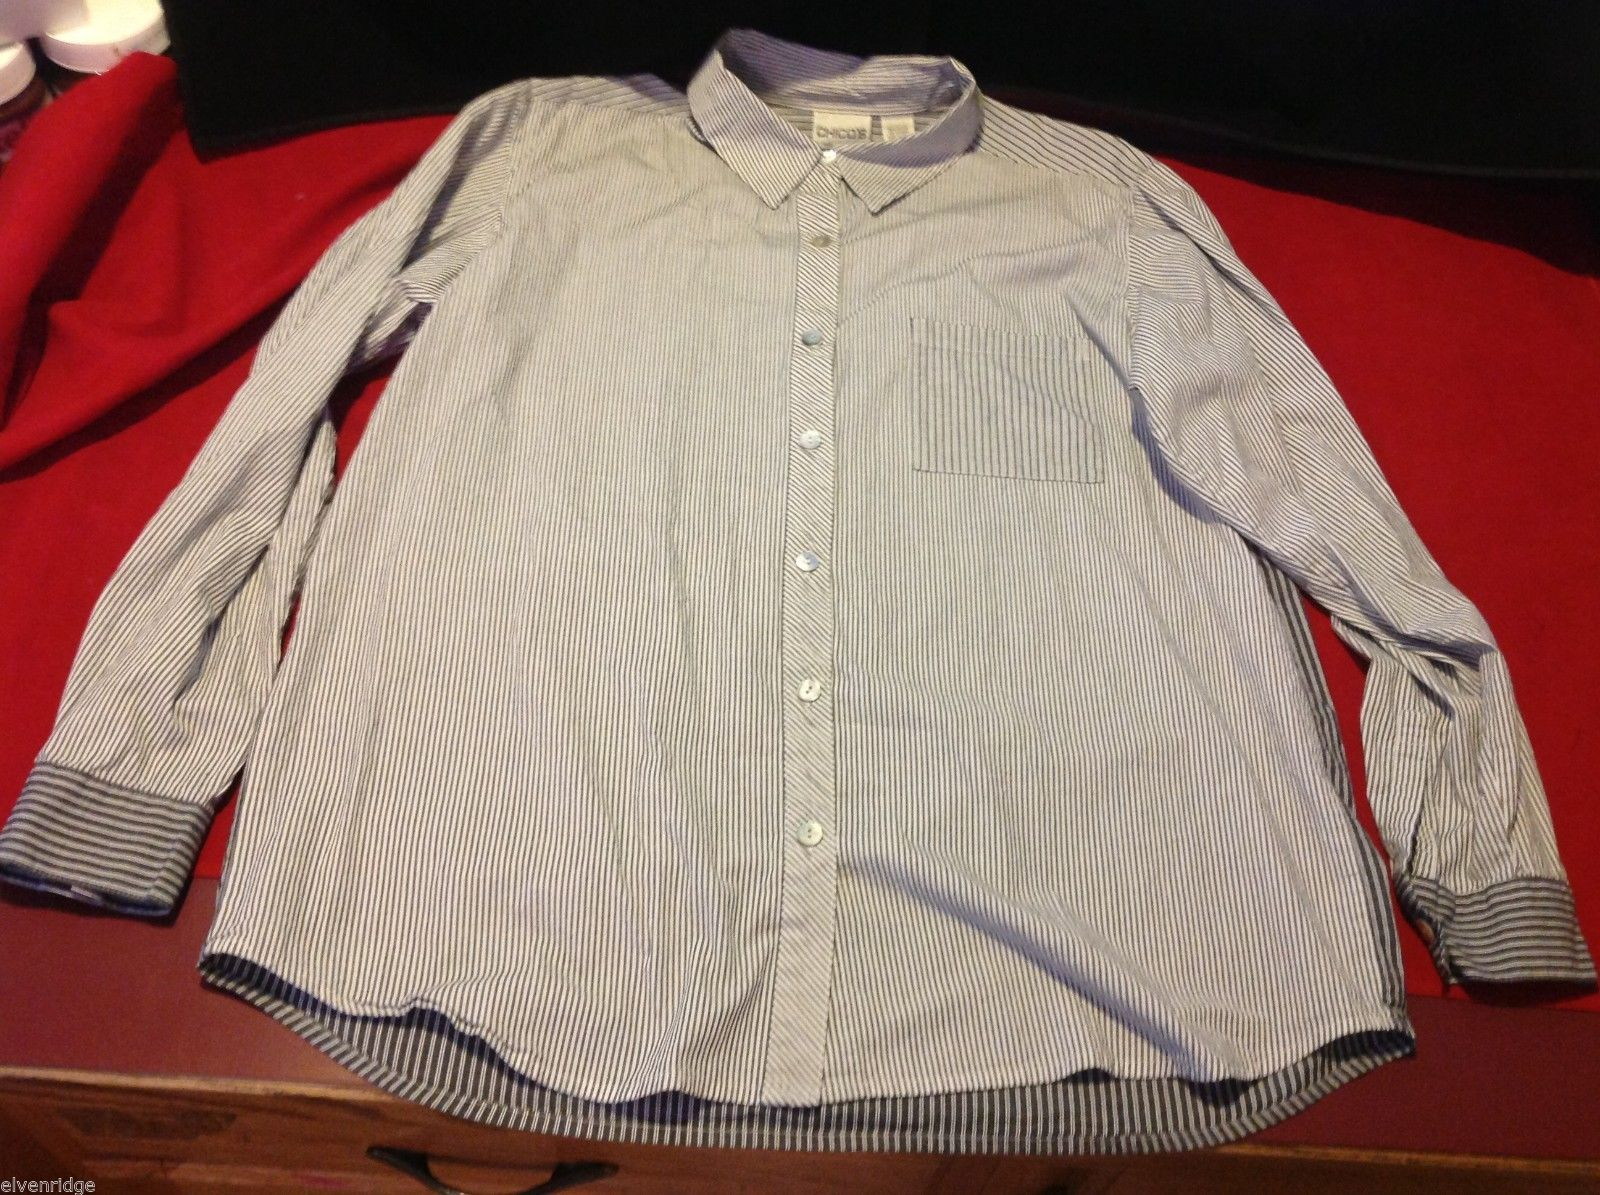 Chico's Size 2 Long Sleeve blouse with stripes in blue white accents